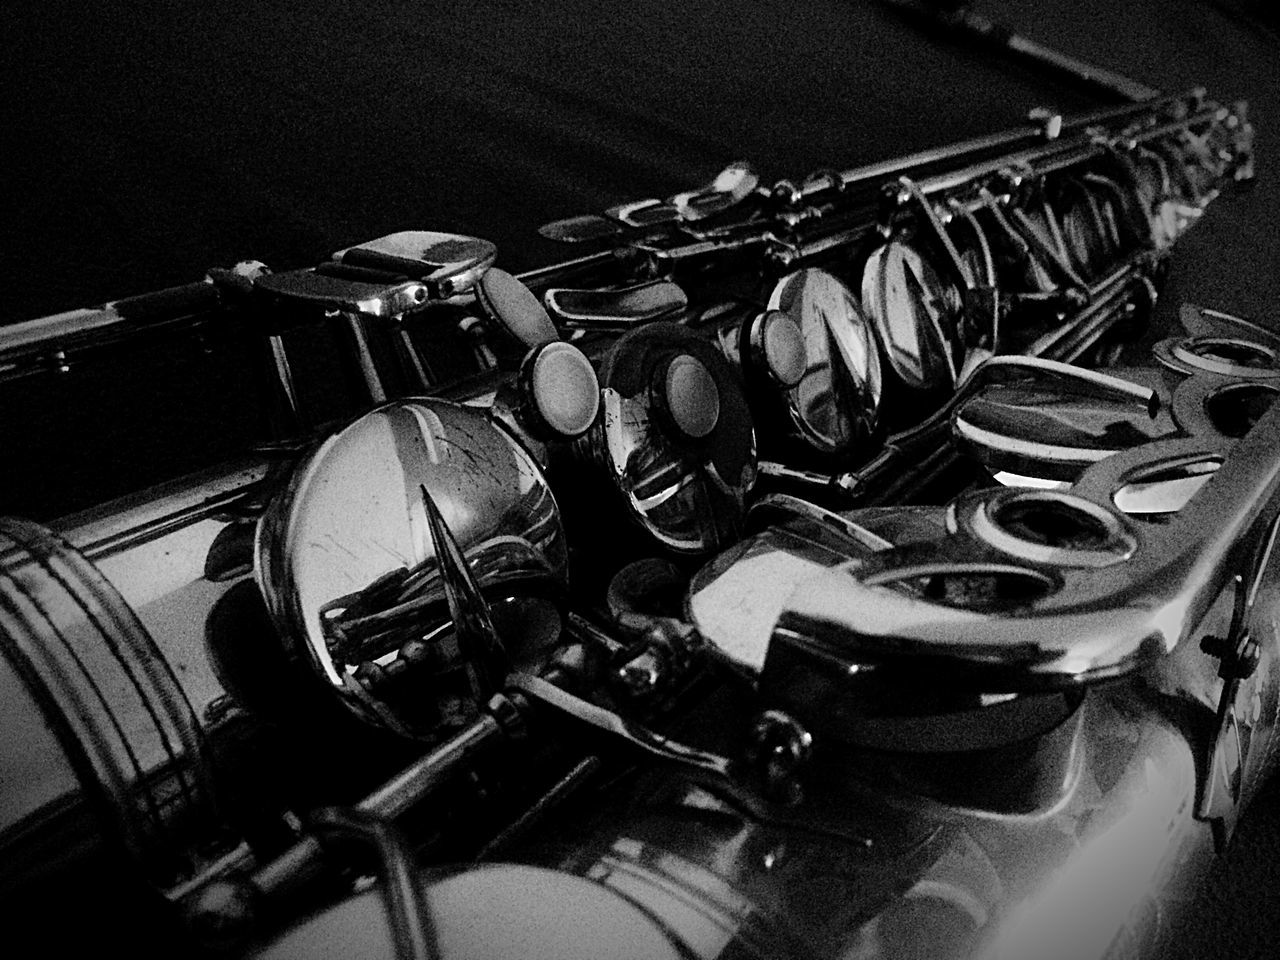 indoors, still life, no people, metal, close-up, music, musical instrument, arts culture and entertainment, large group of objects, table, equipment, stack, high angle view, musical equipment, in a row, group, focus on foreground, selective focus, day, abundance